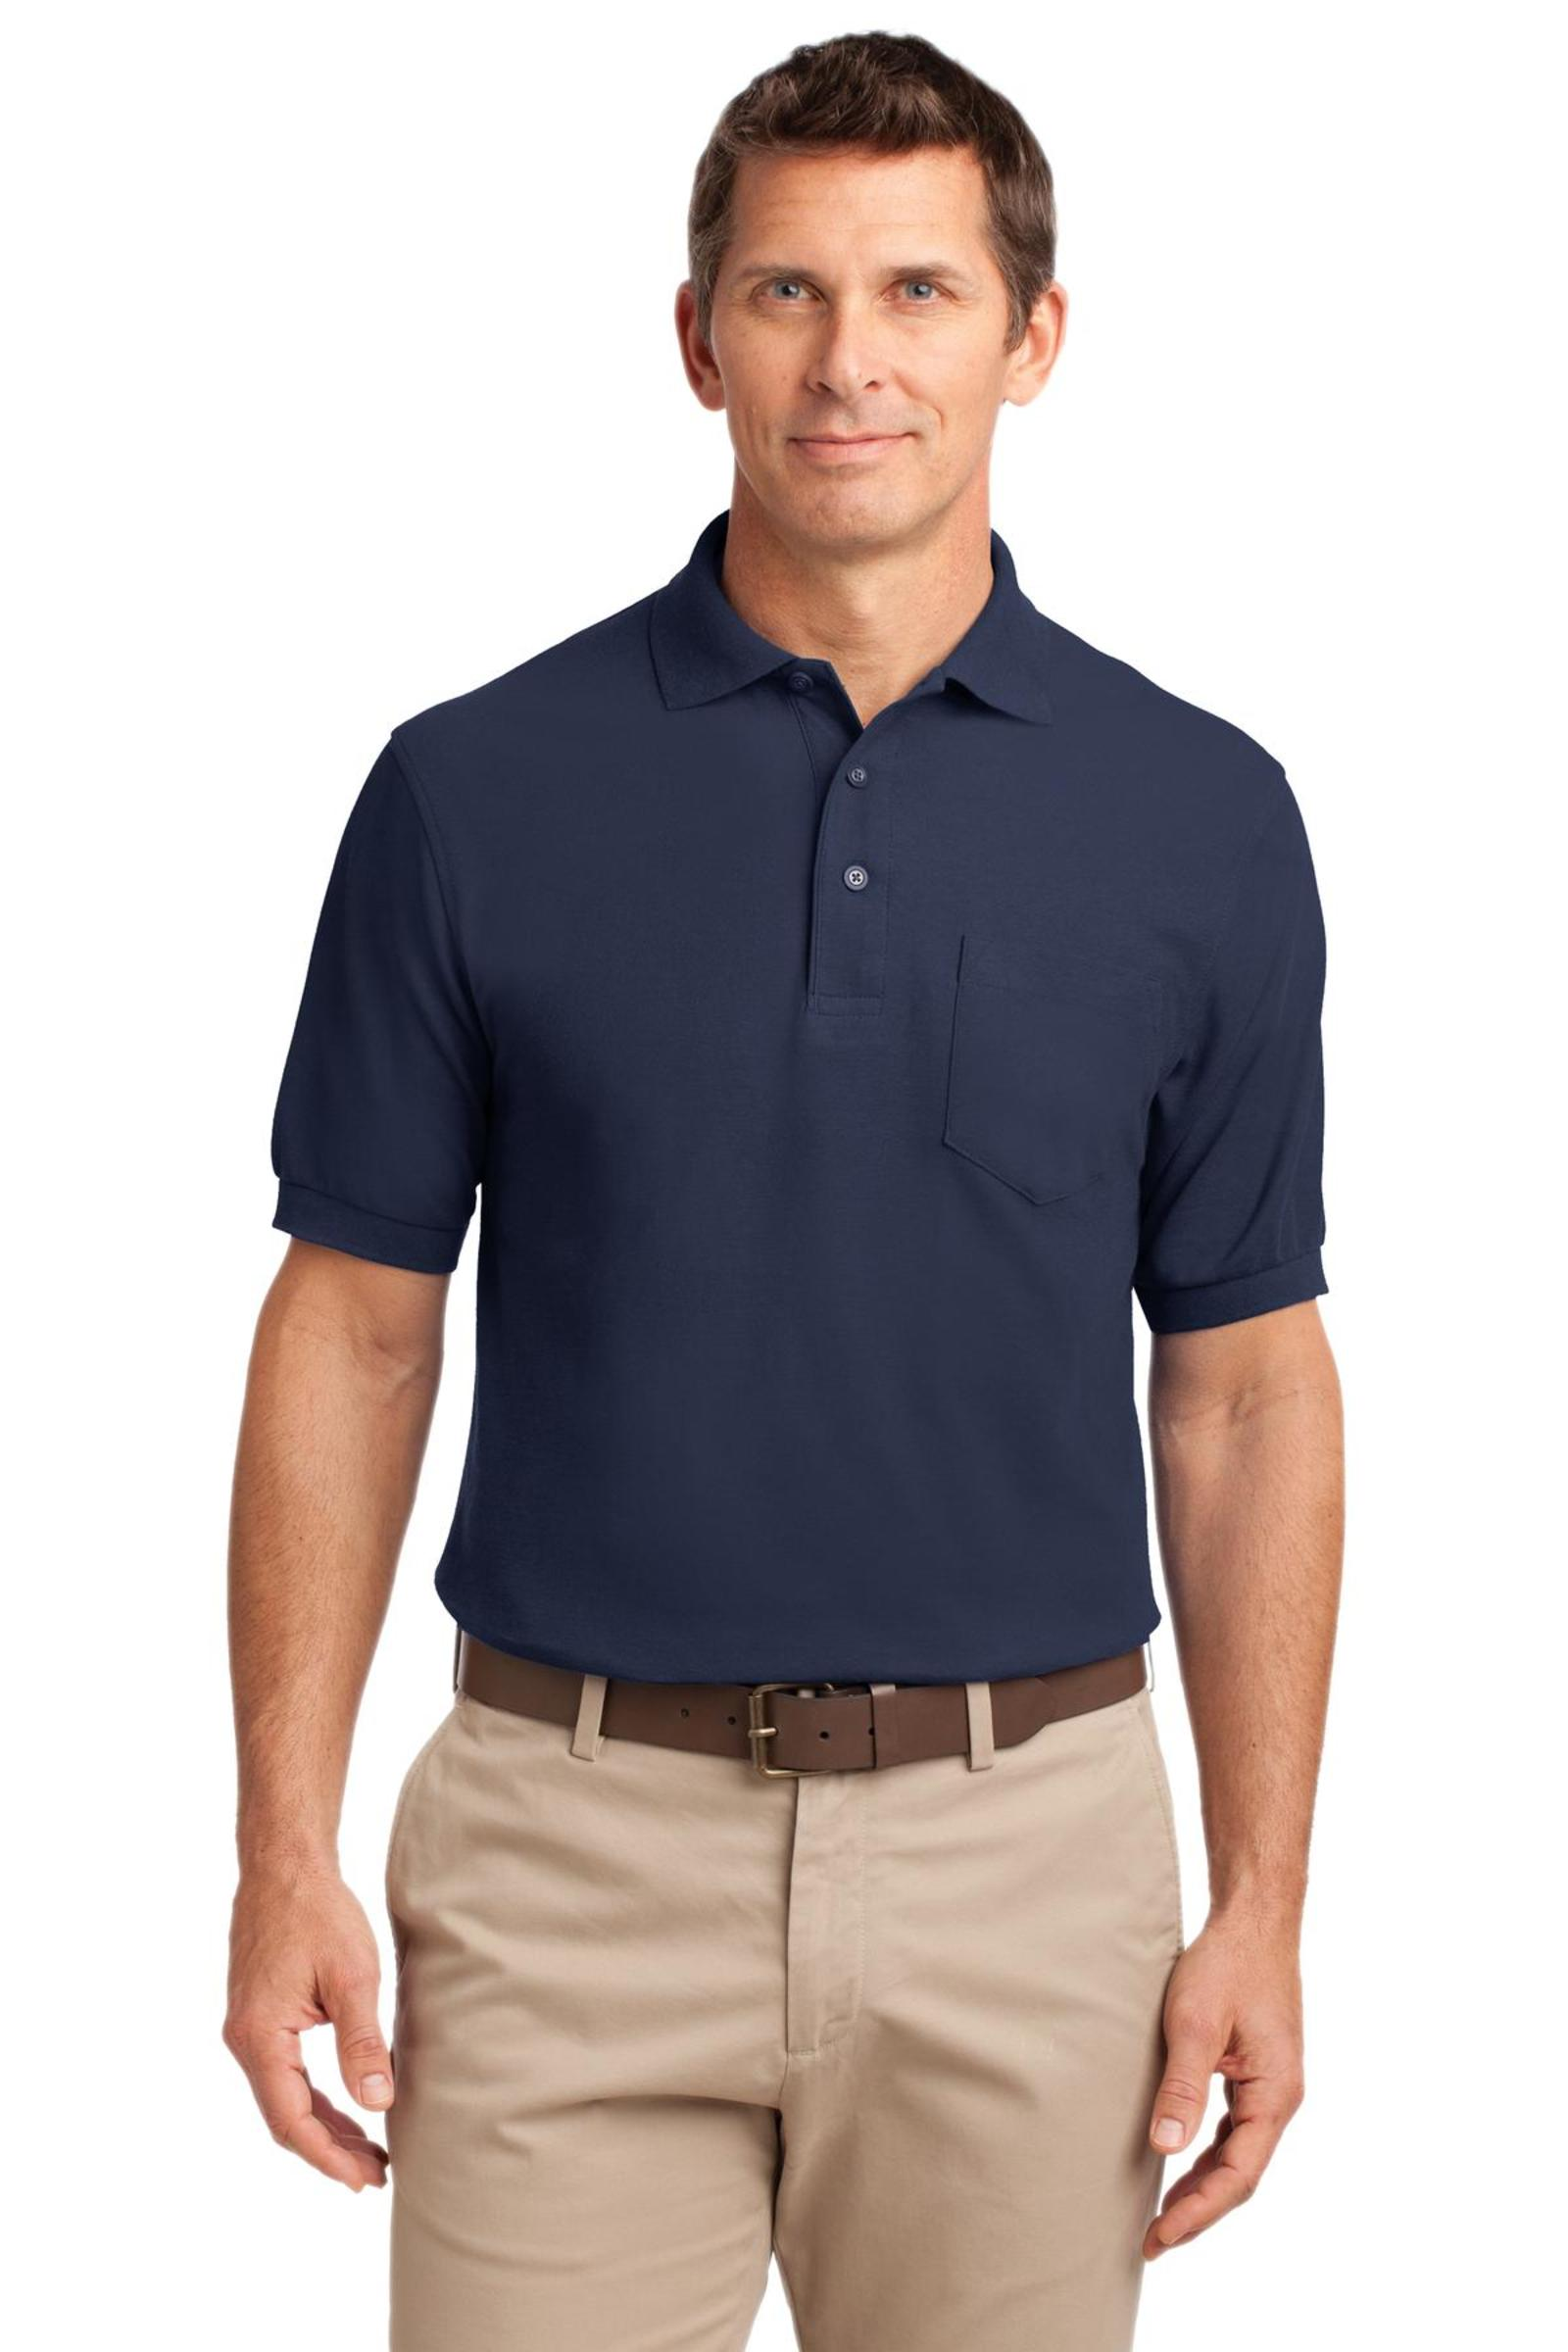 Port Authority Embroidered Men's Tall Silk Touch Polo with Pocket